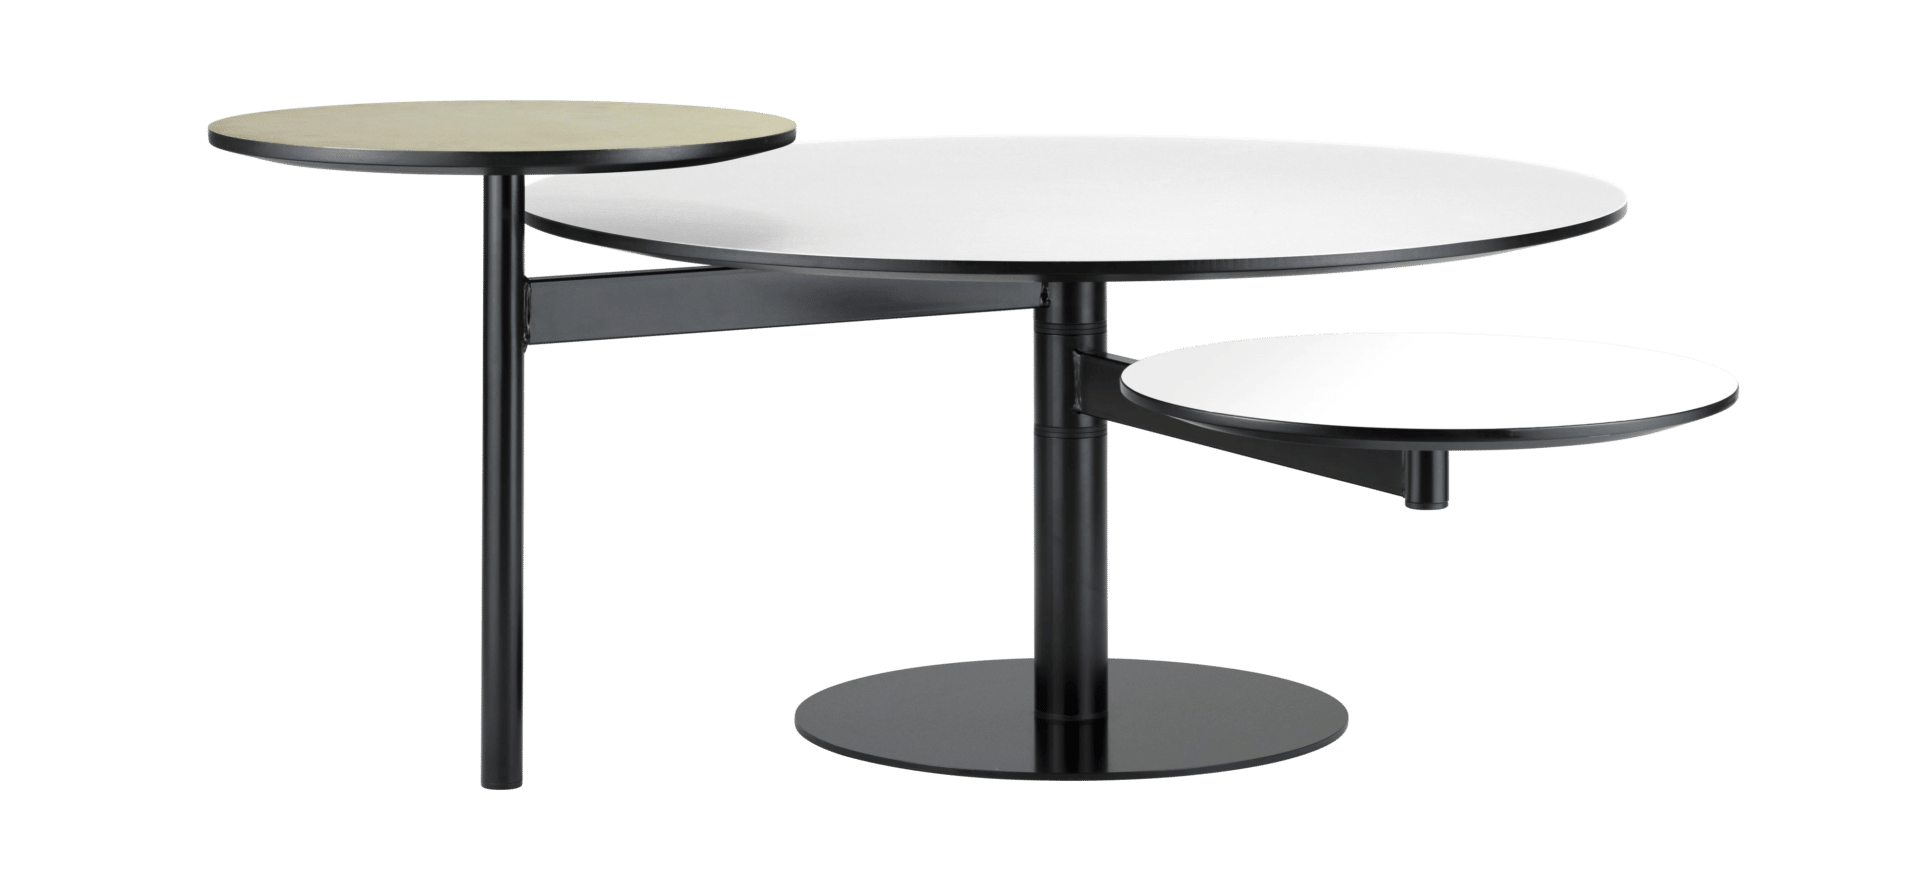 The Eclipse Laminate Coffee Table, White / Brass By Bolia Boasts A Top  Finish In White/brass, With A Frame Finish In Black   Powder Coated Steel.